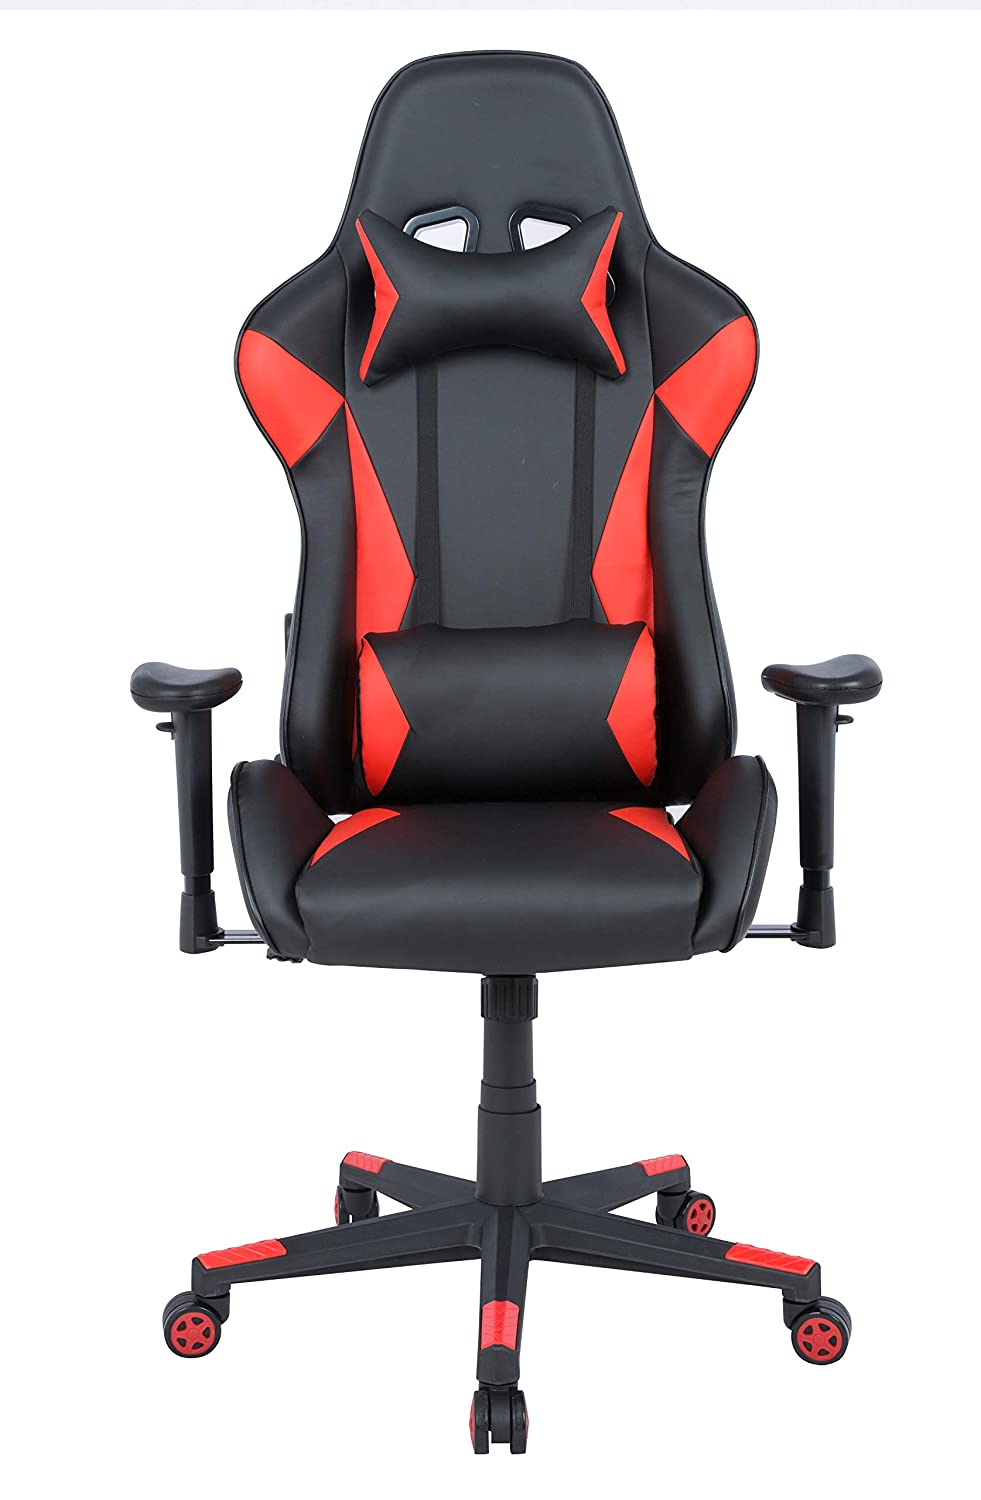 AmazonBasics Gaming Chair - Racing Style Seat with Headrest and Firm Lumbar Support, Easy Assembly - Red